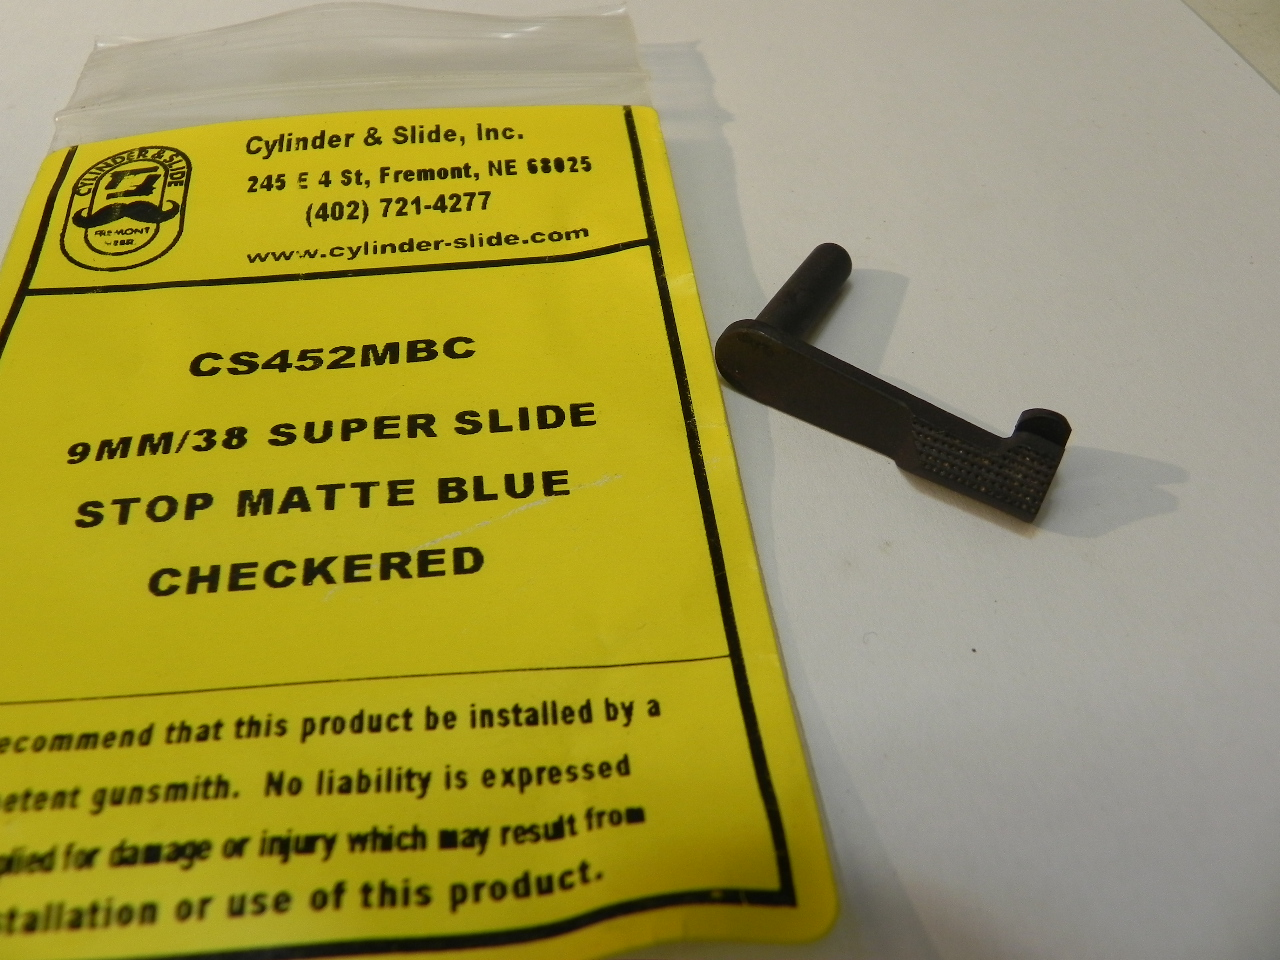 CS452MBC - 9mm/38 Super, Blue, Checkered, Slide Stop - Cast